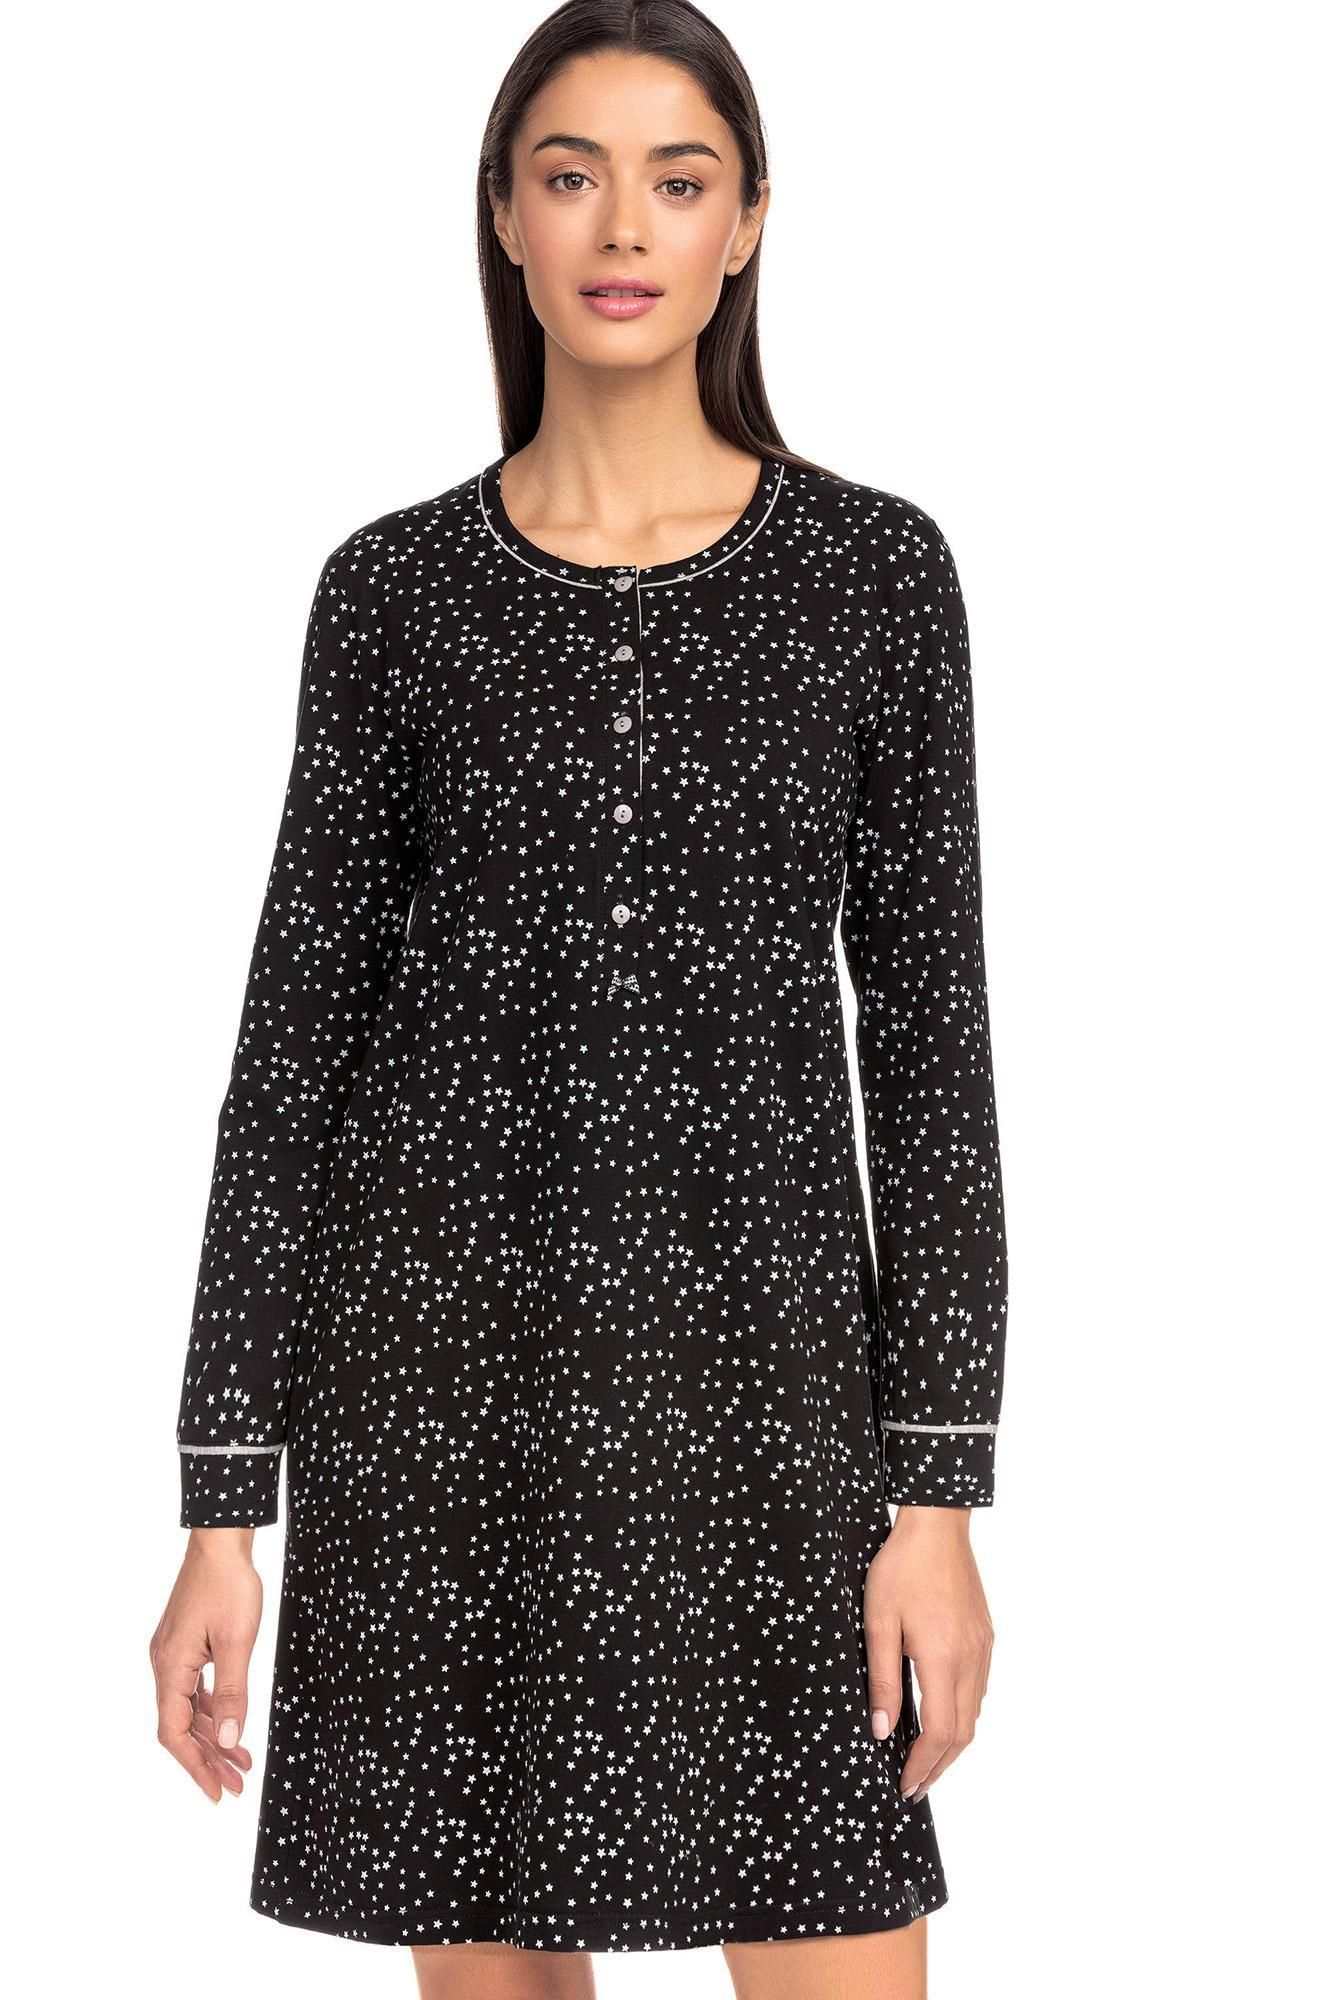 Women's Nightgown with stars